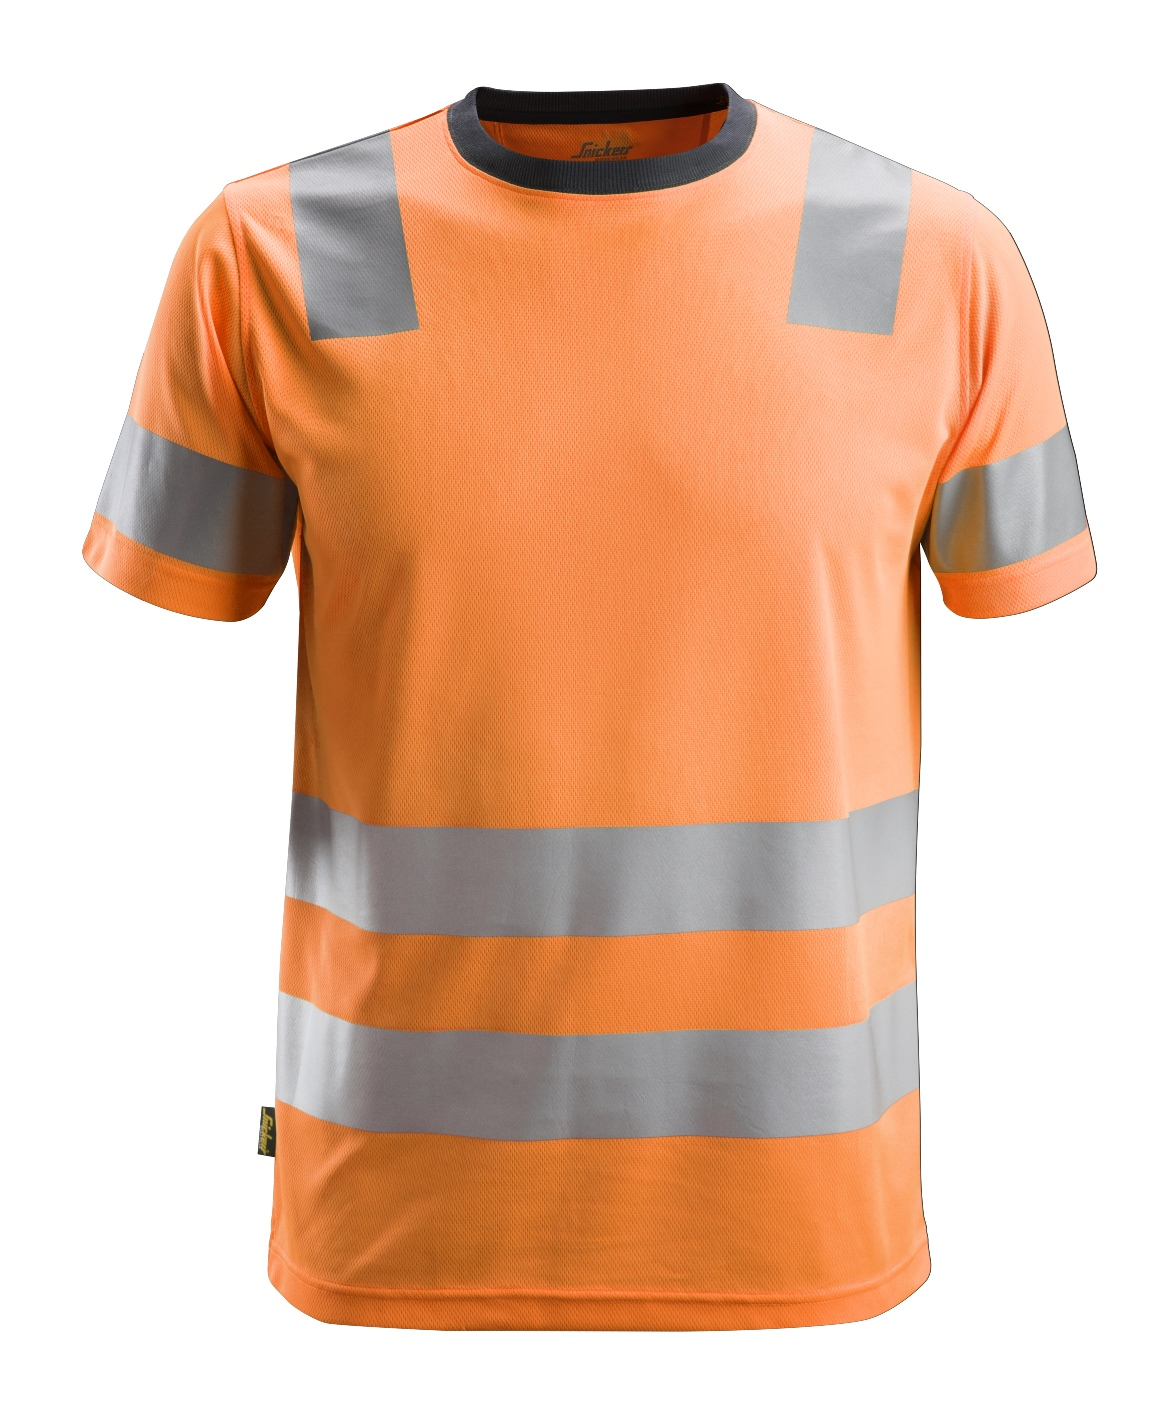 Snickers 2530 - T-shirt HV, AllroundWork CL2